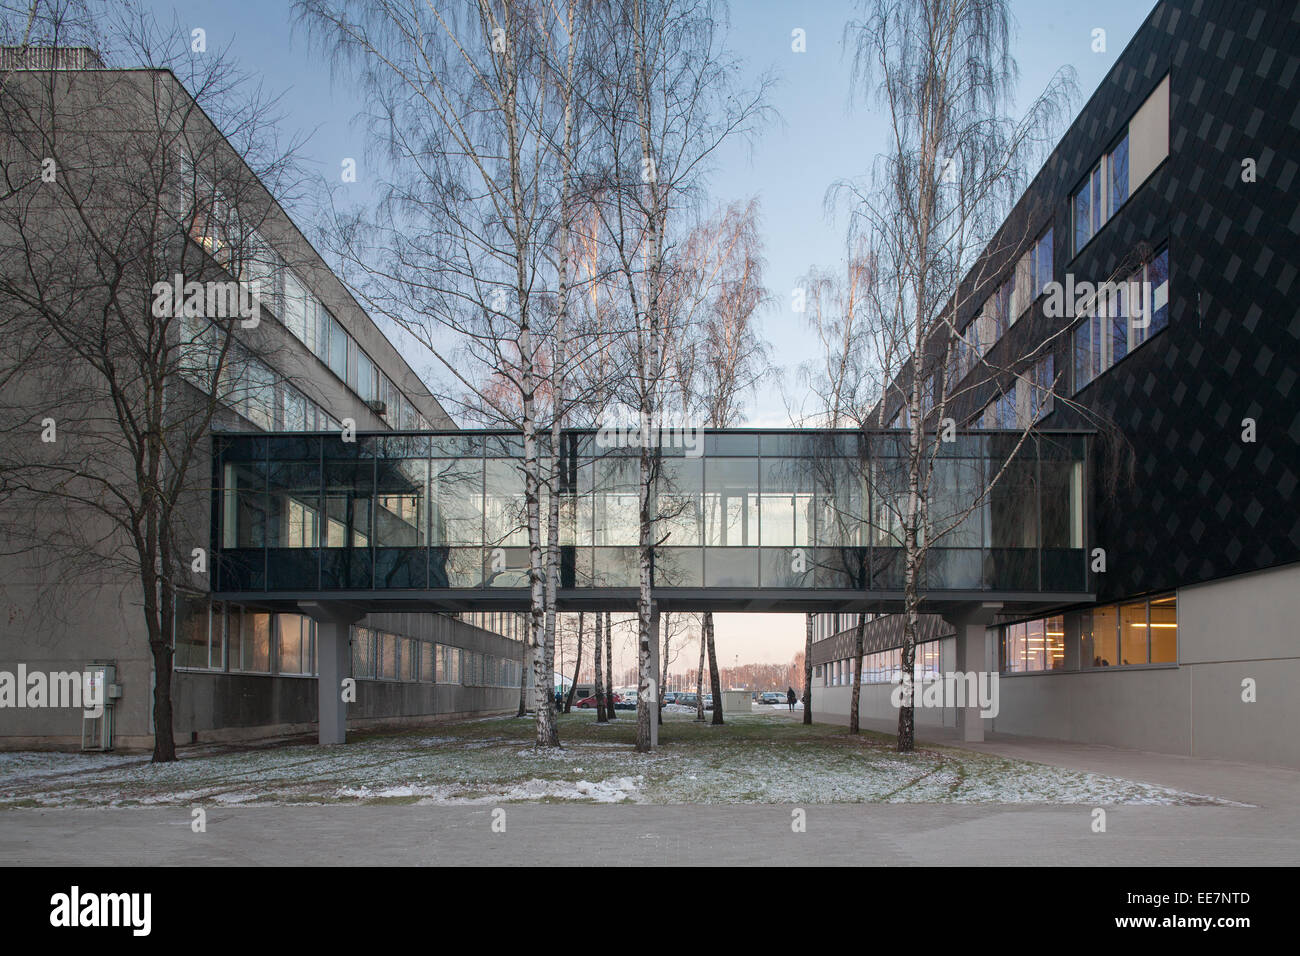 Design Center Of Riga Technical University. Architecture, Riga, Latvia